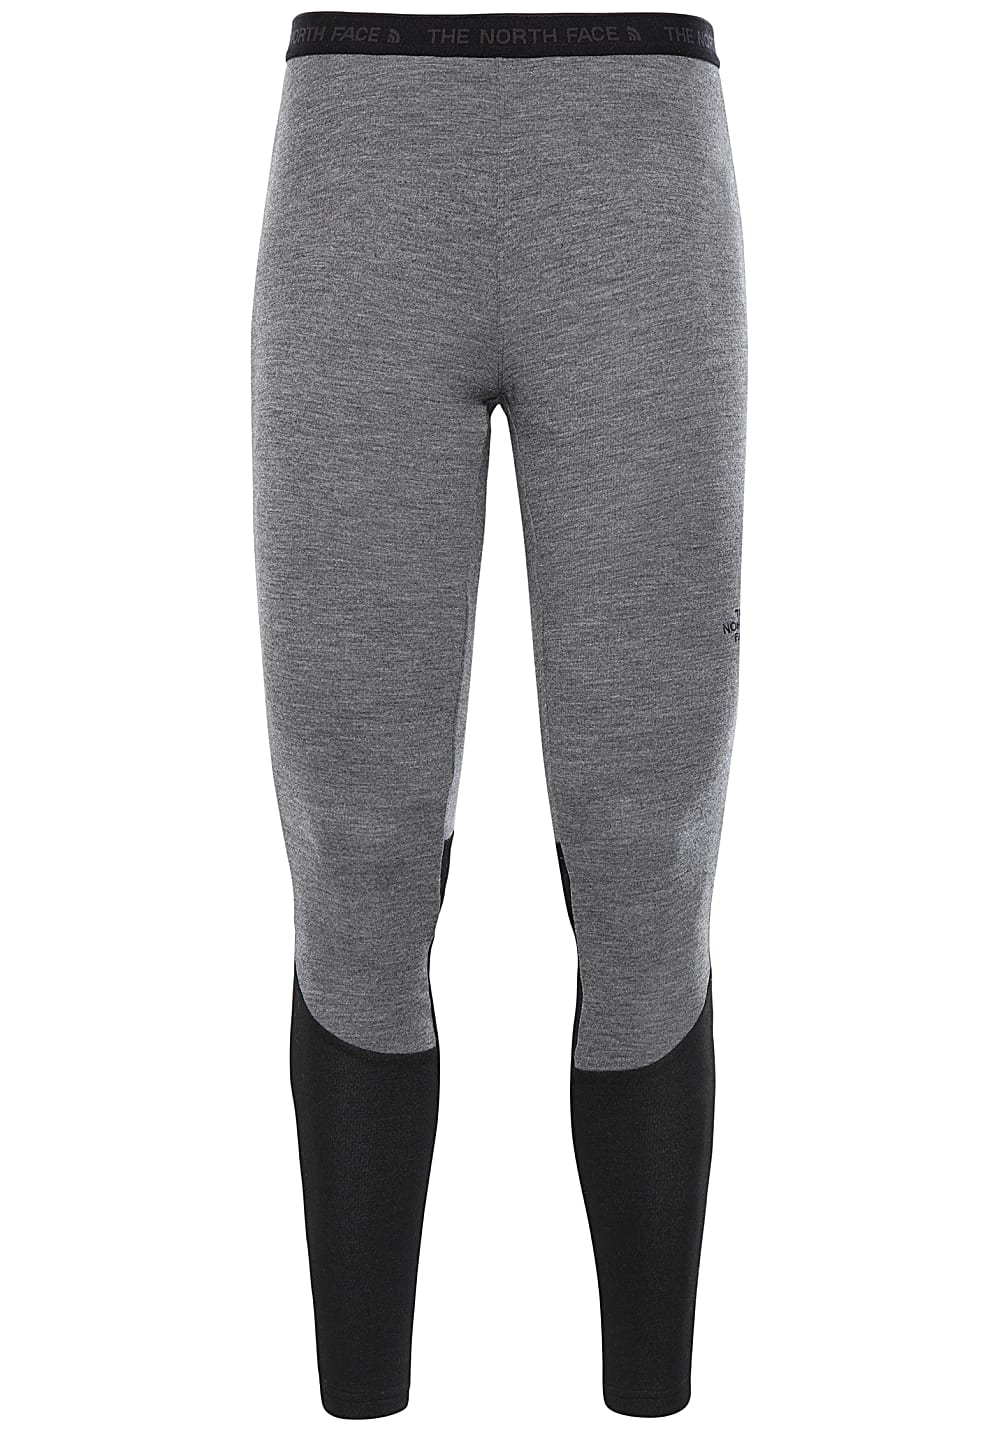 diversified in packaging online retailer women THE NORTH FACE Easy Tights - Functional Top for Women - Grey